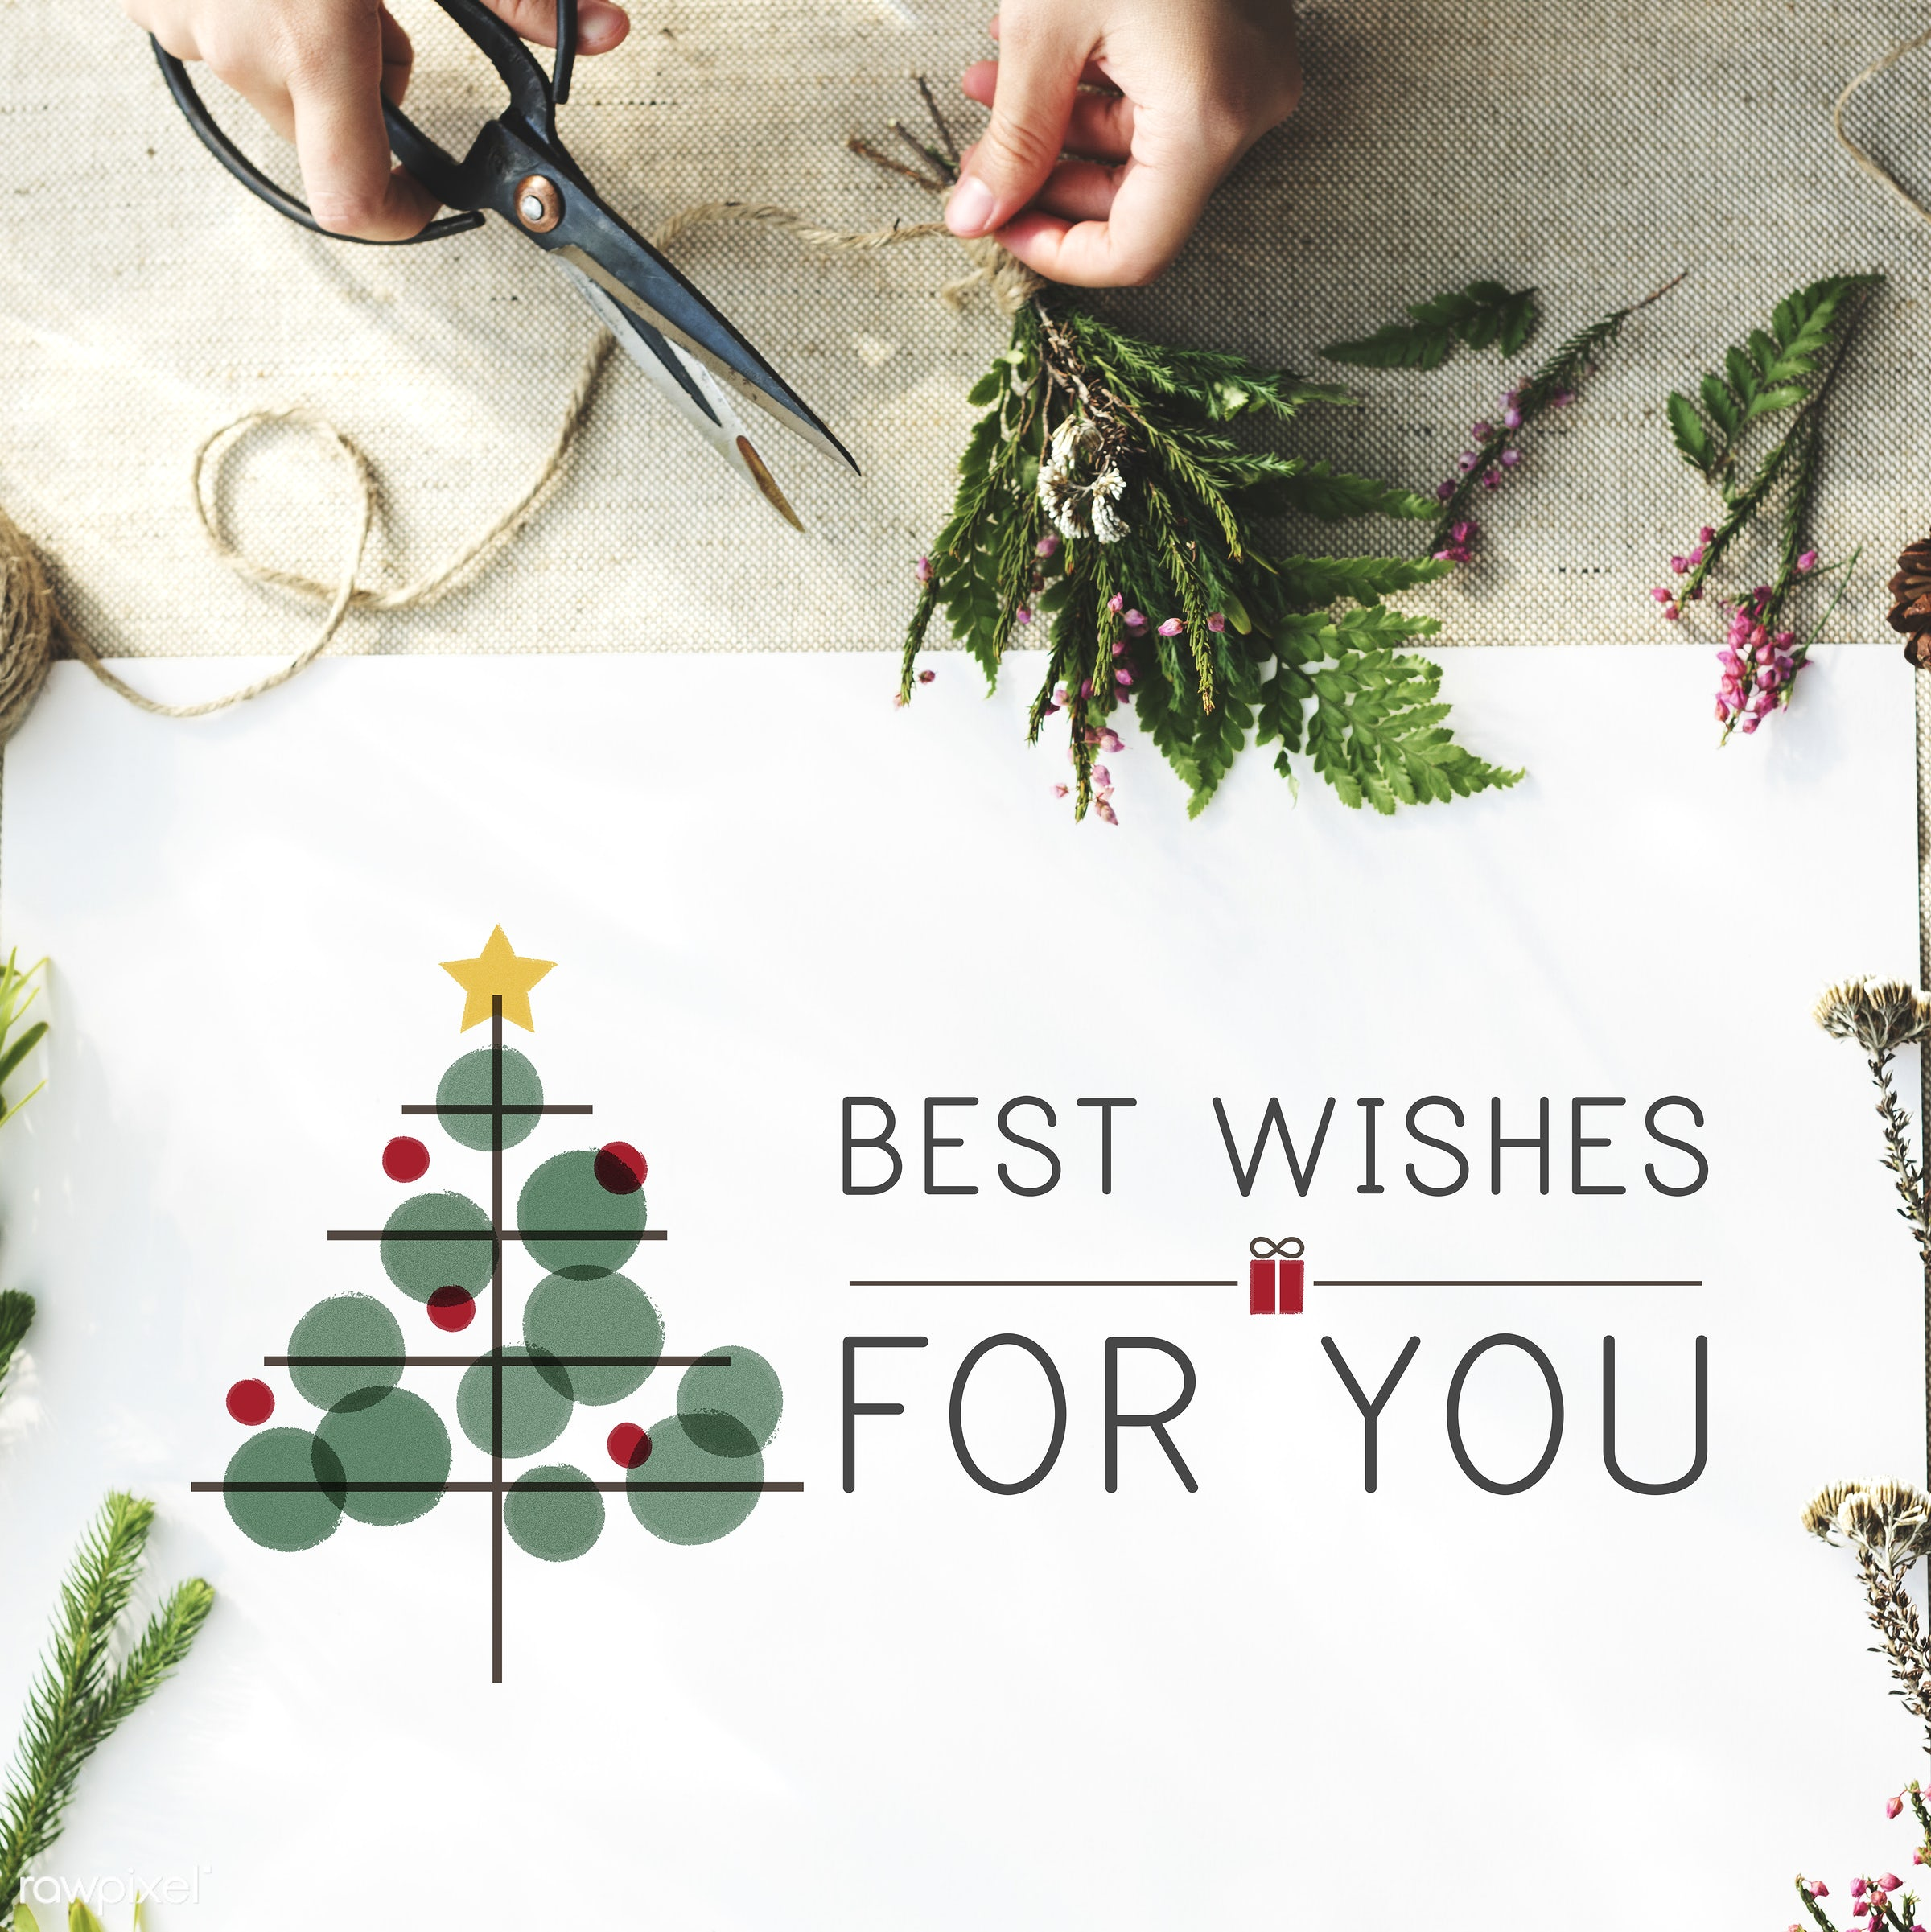 new year, gift, christmas, snow, merry, winter, artistic, arts, arts and craft, balls, best wishes, celebration, christmas...